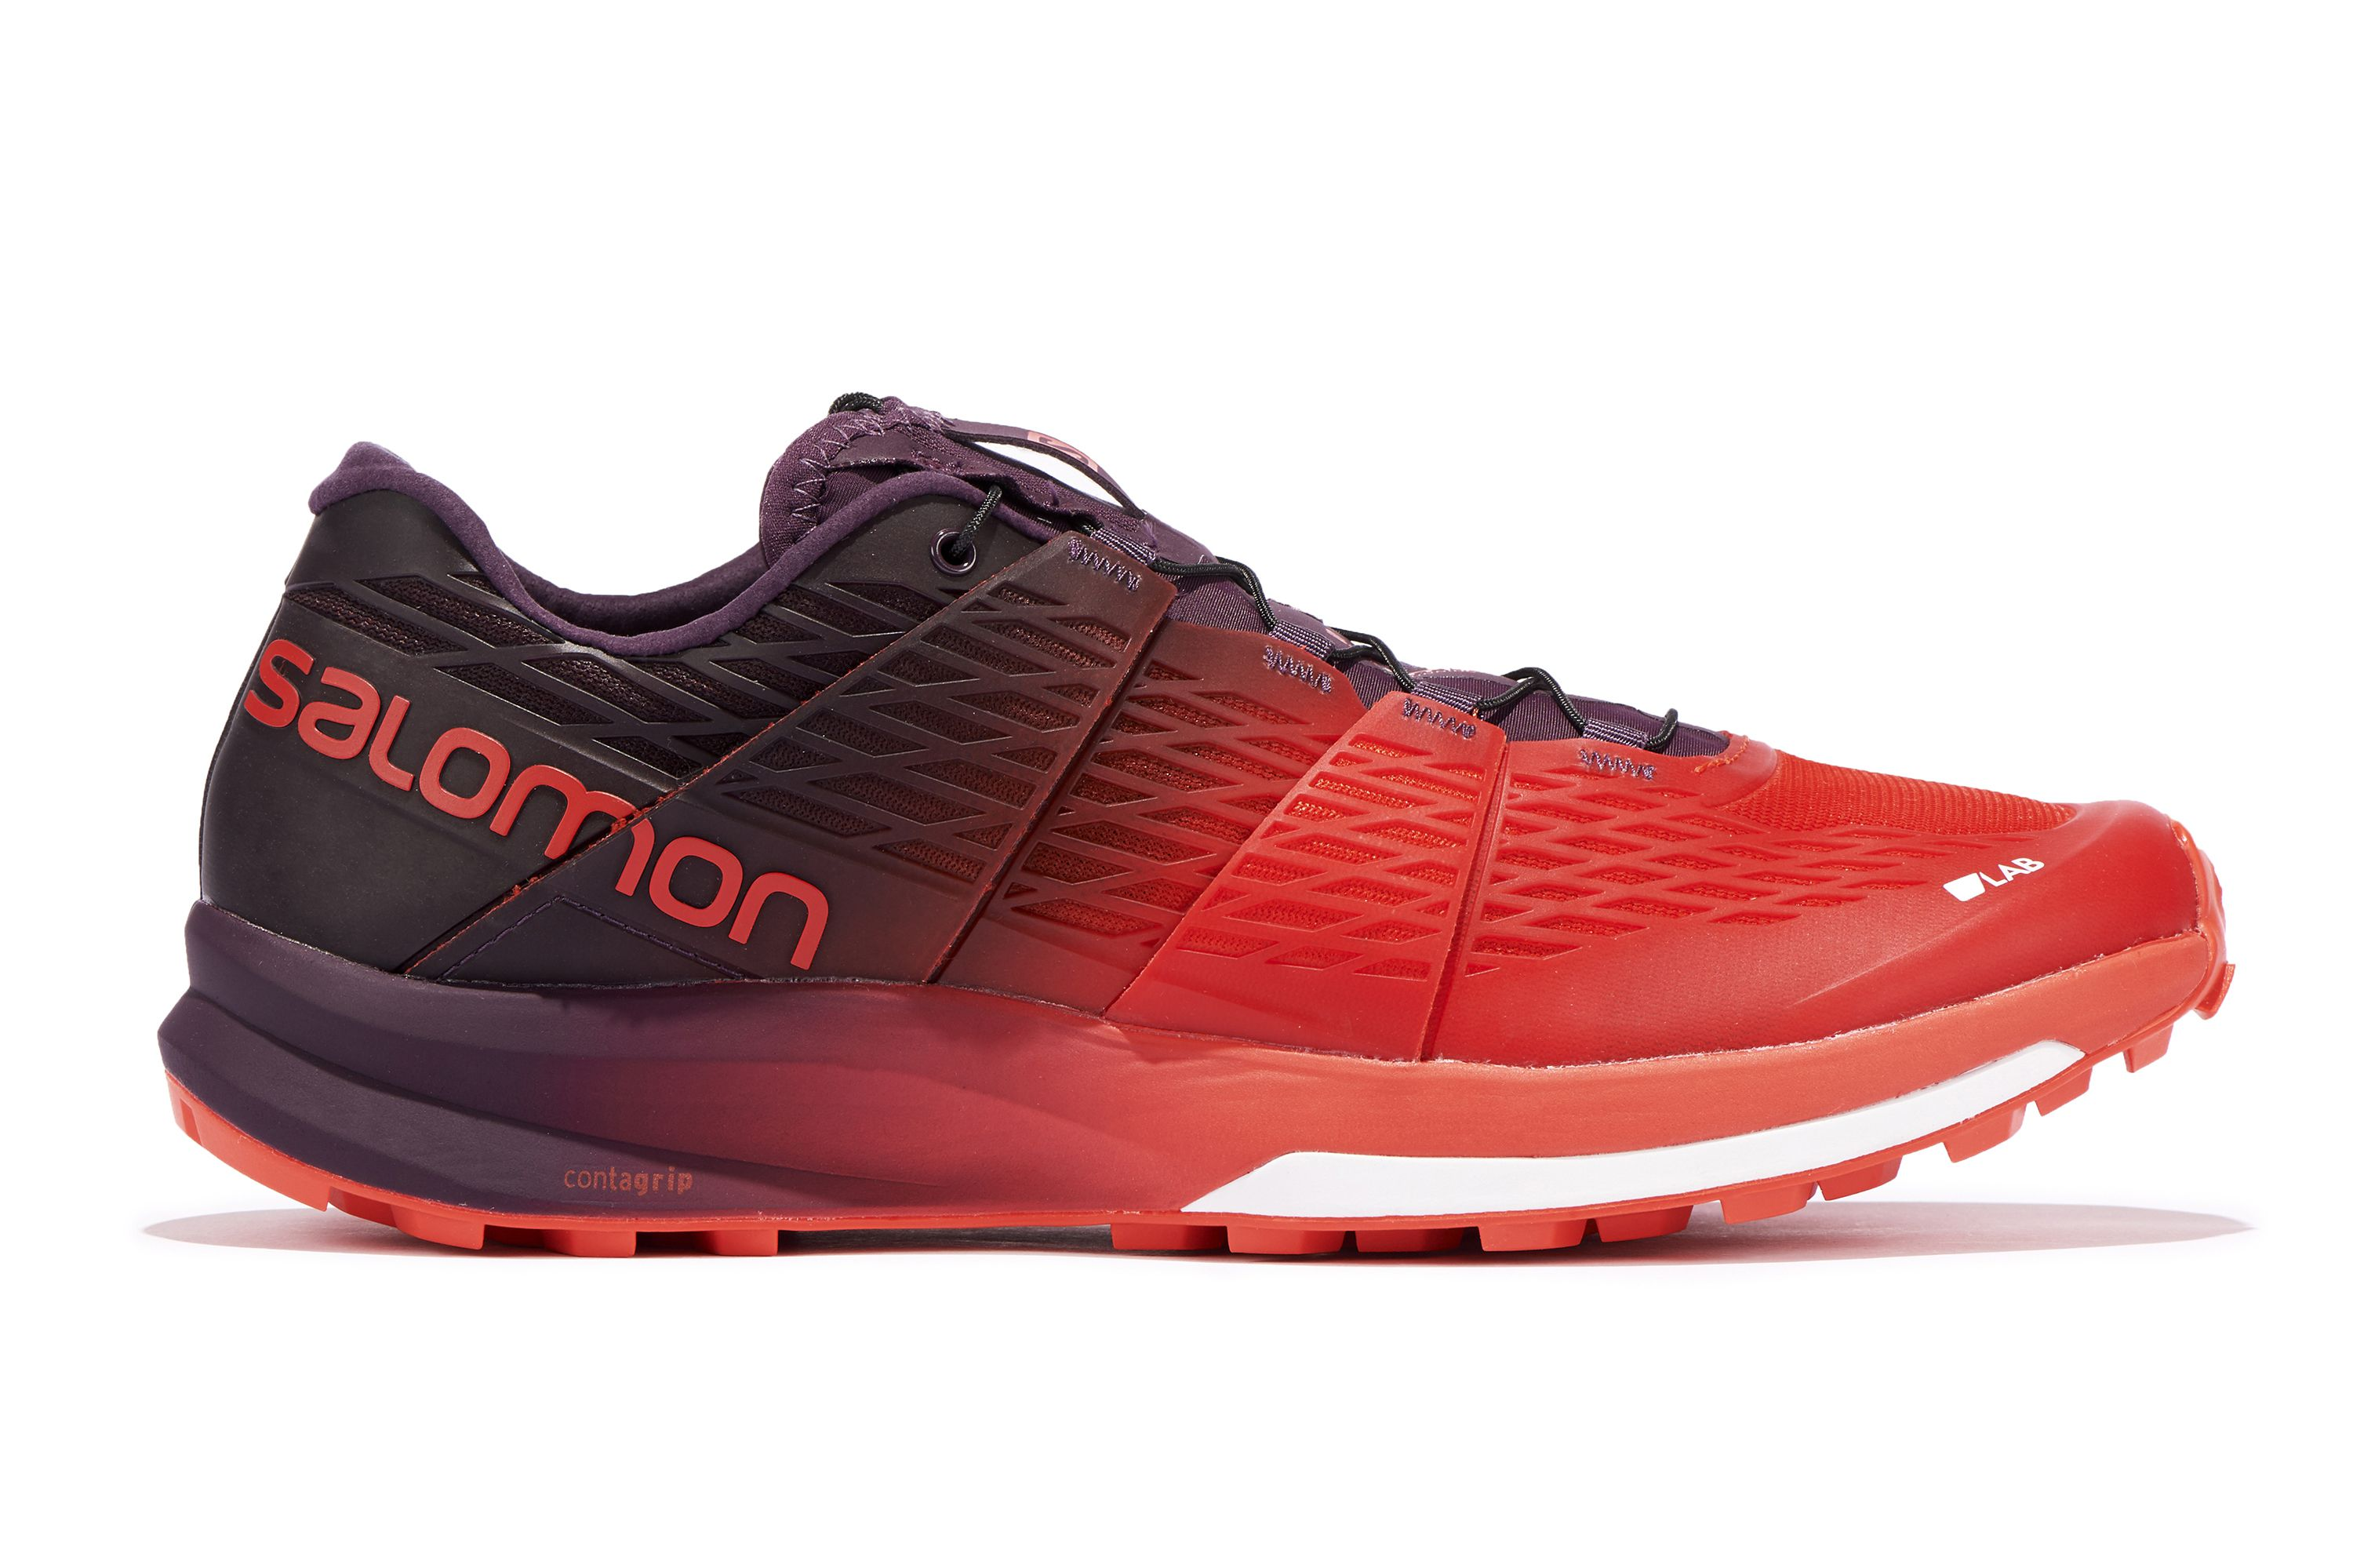 quality design f3e59 ab72d Salomon Running Shoes - 8 Best Shoes from Salomon 2019